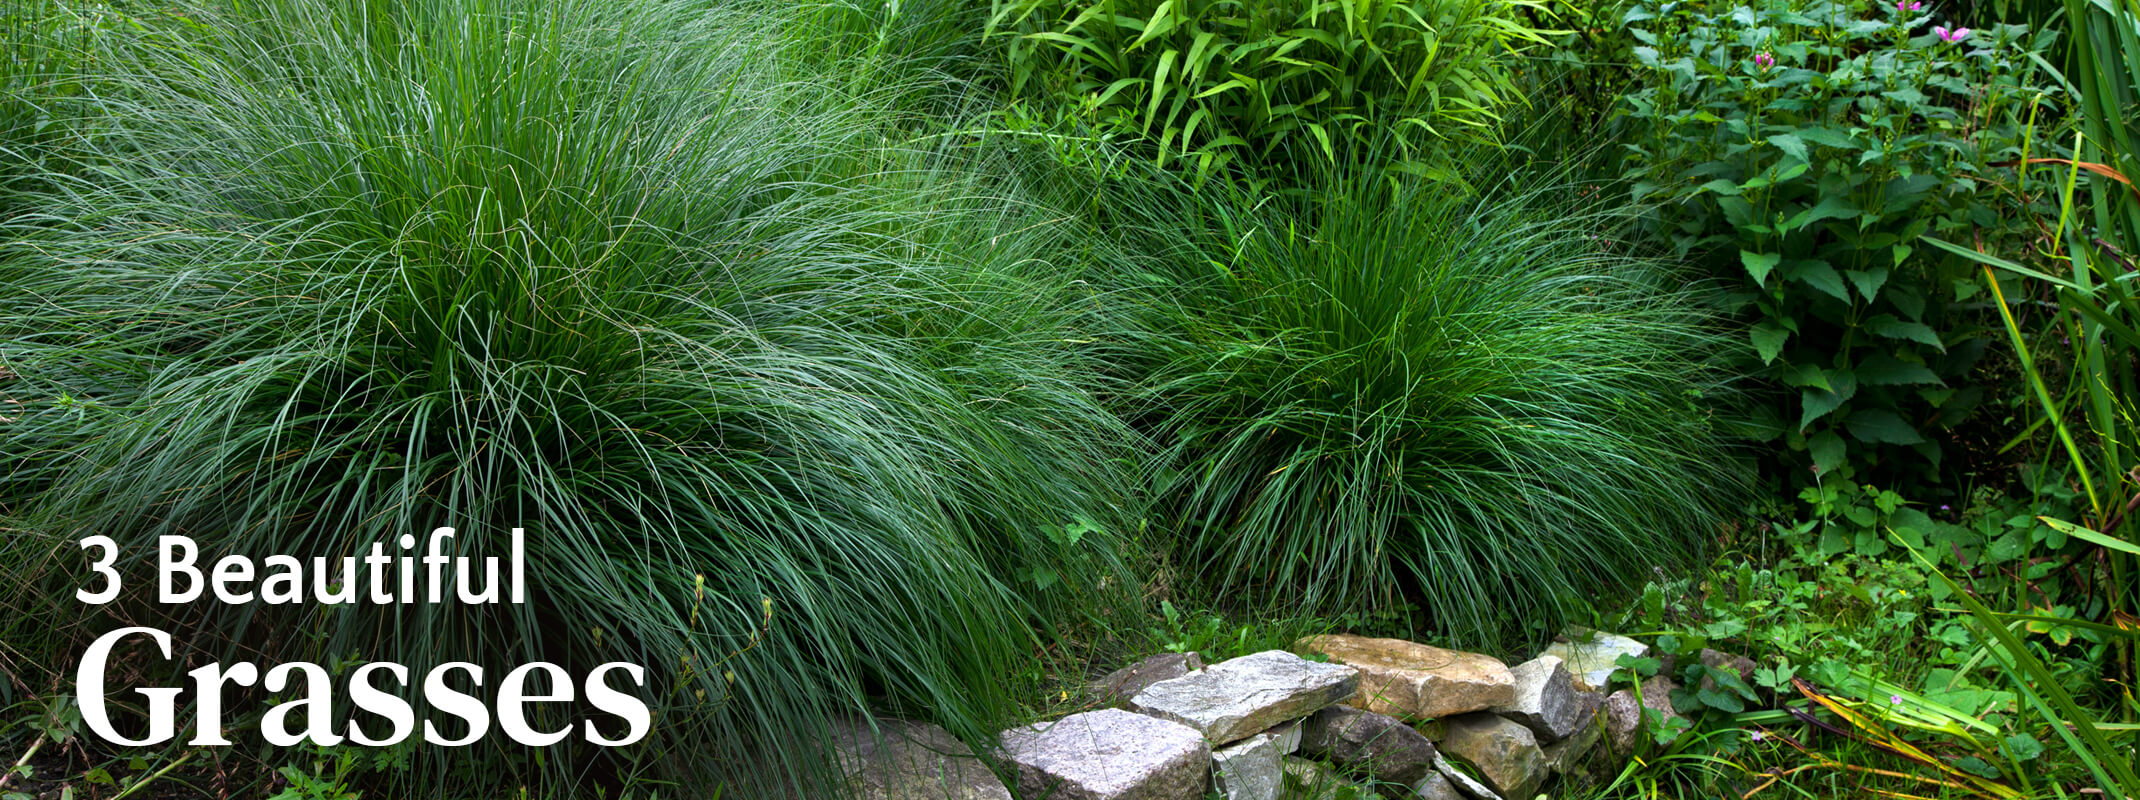 Ornamental grasses in a landscape with vines and bamboo framed in with a mini rock wall with the words: 3 Beautiful Grasses on the image